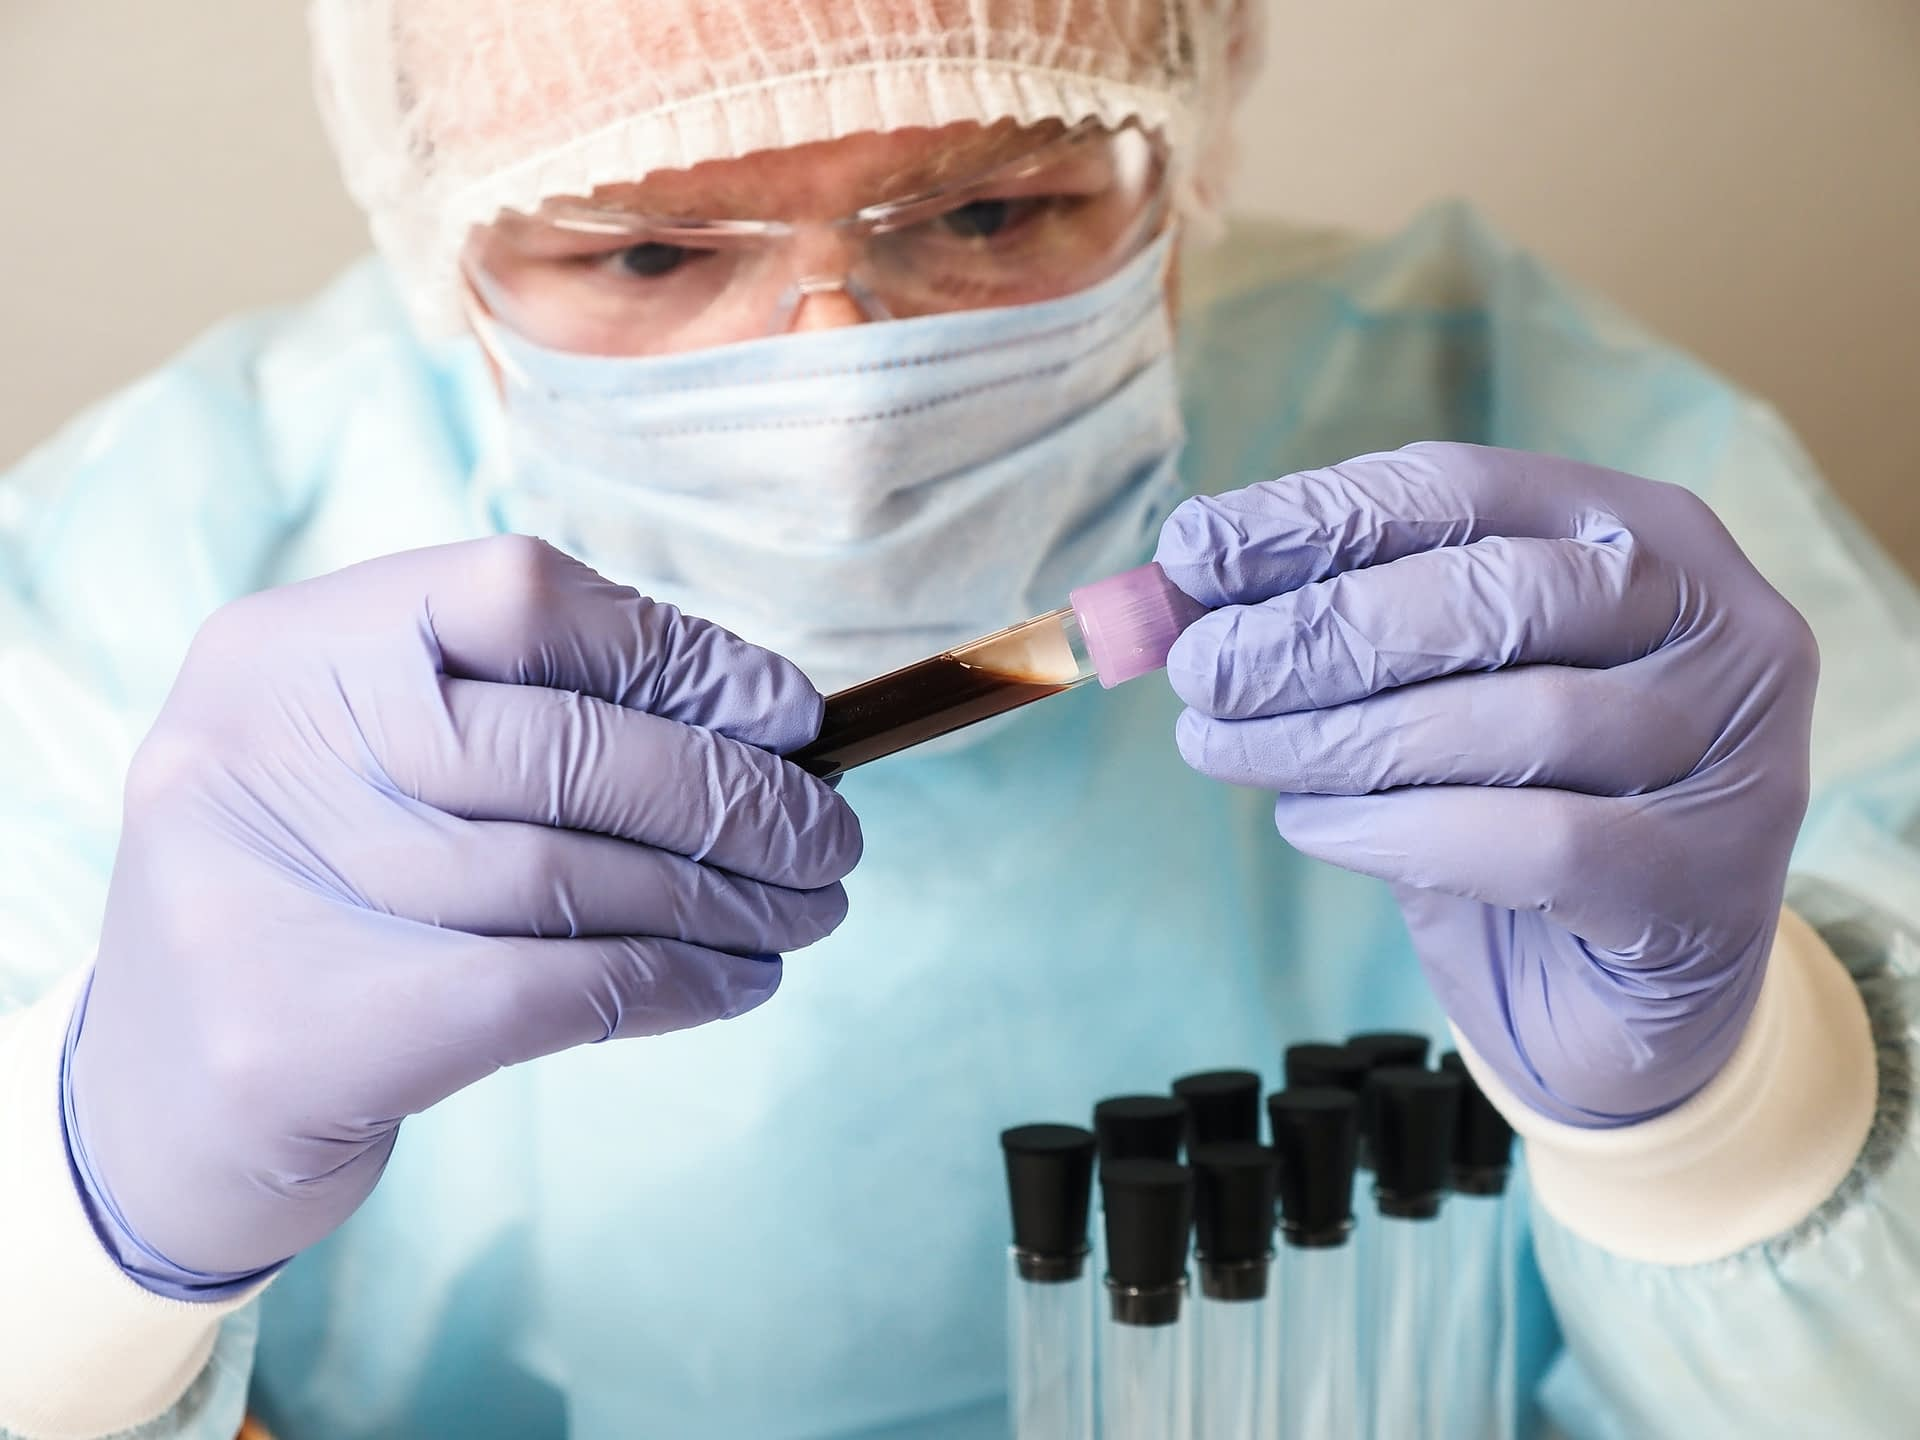 Medical laboratory specialist with a test tube